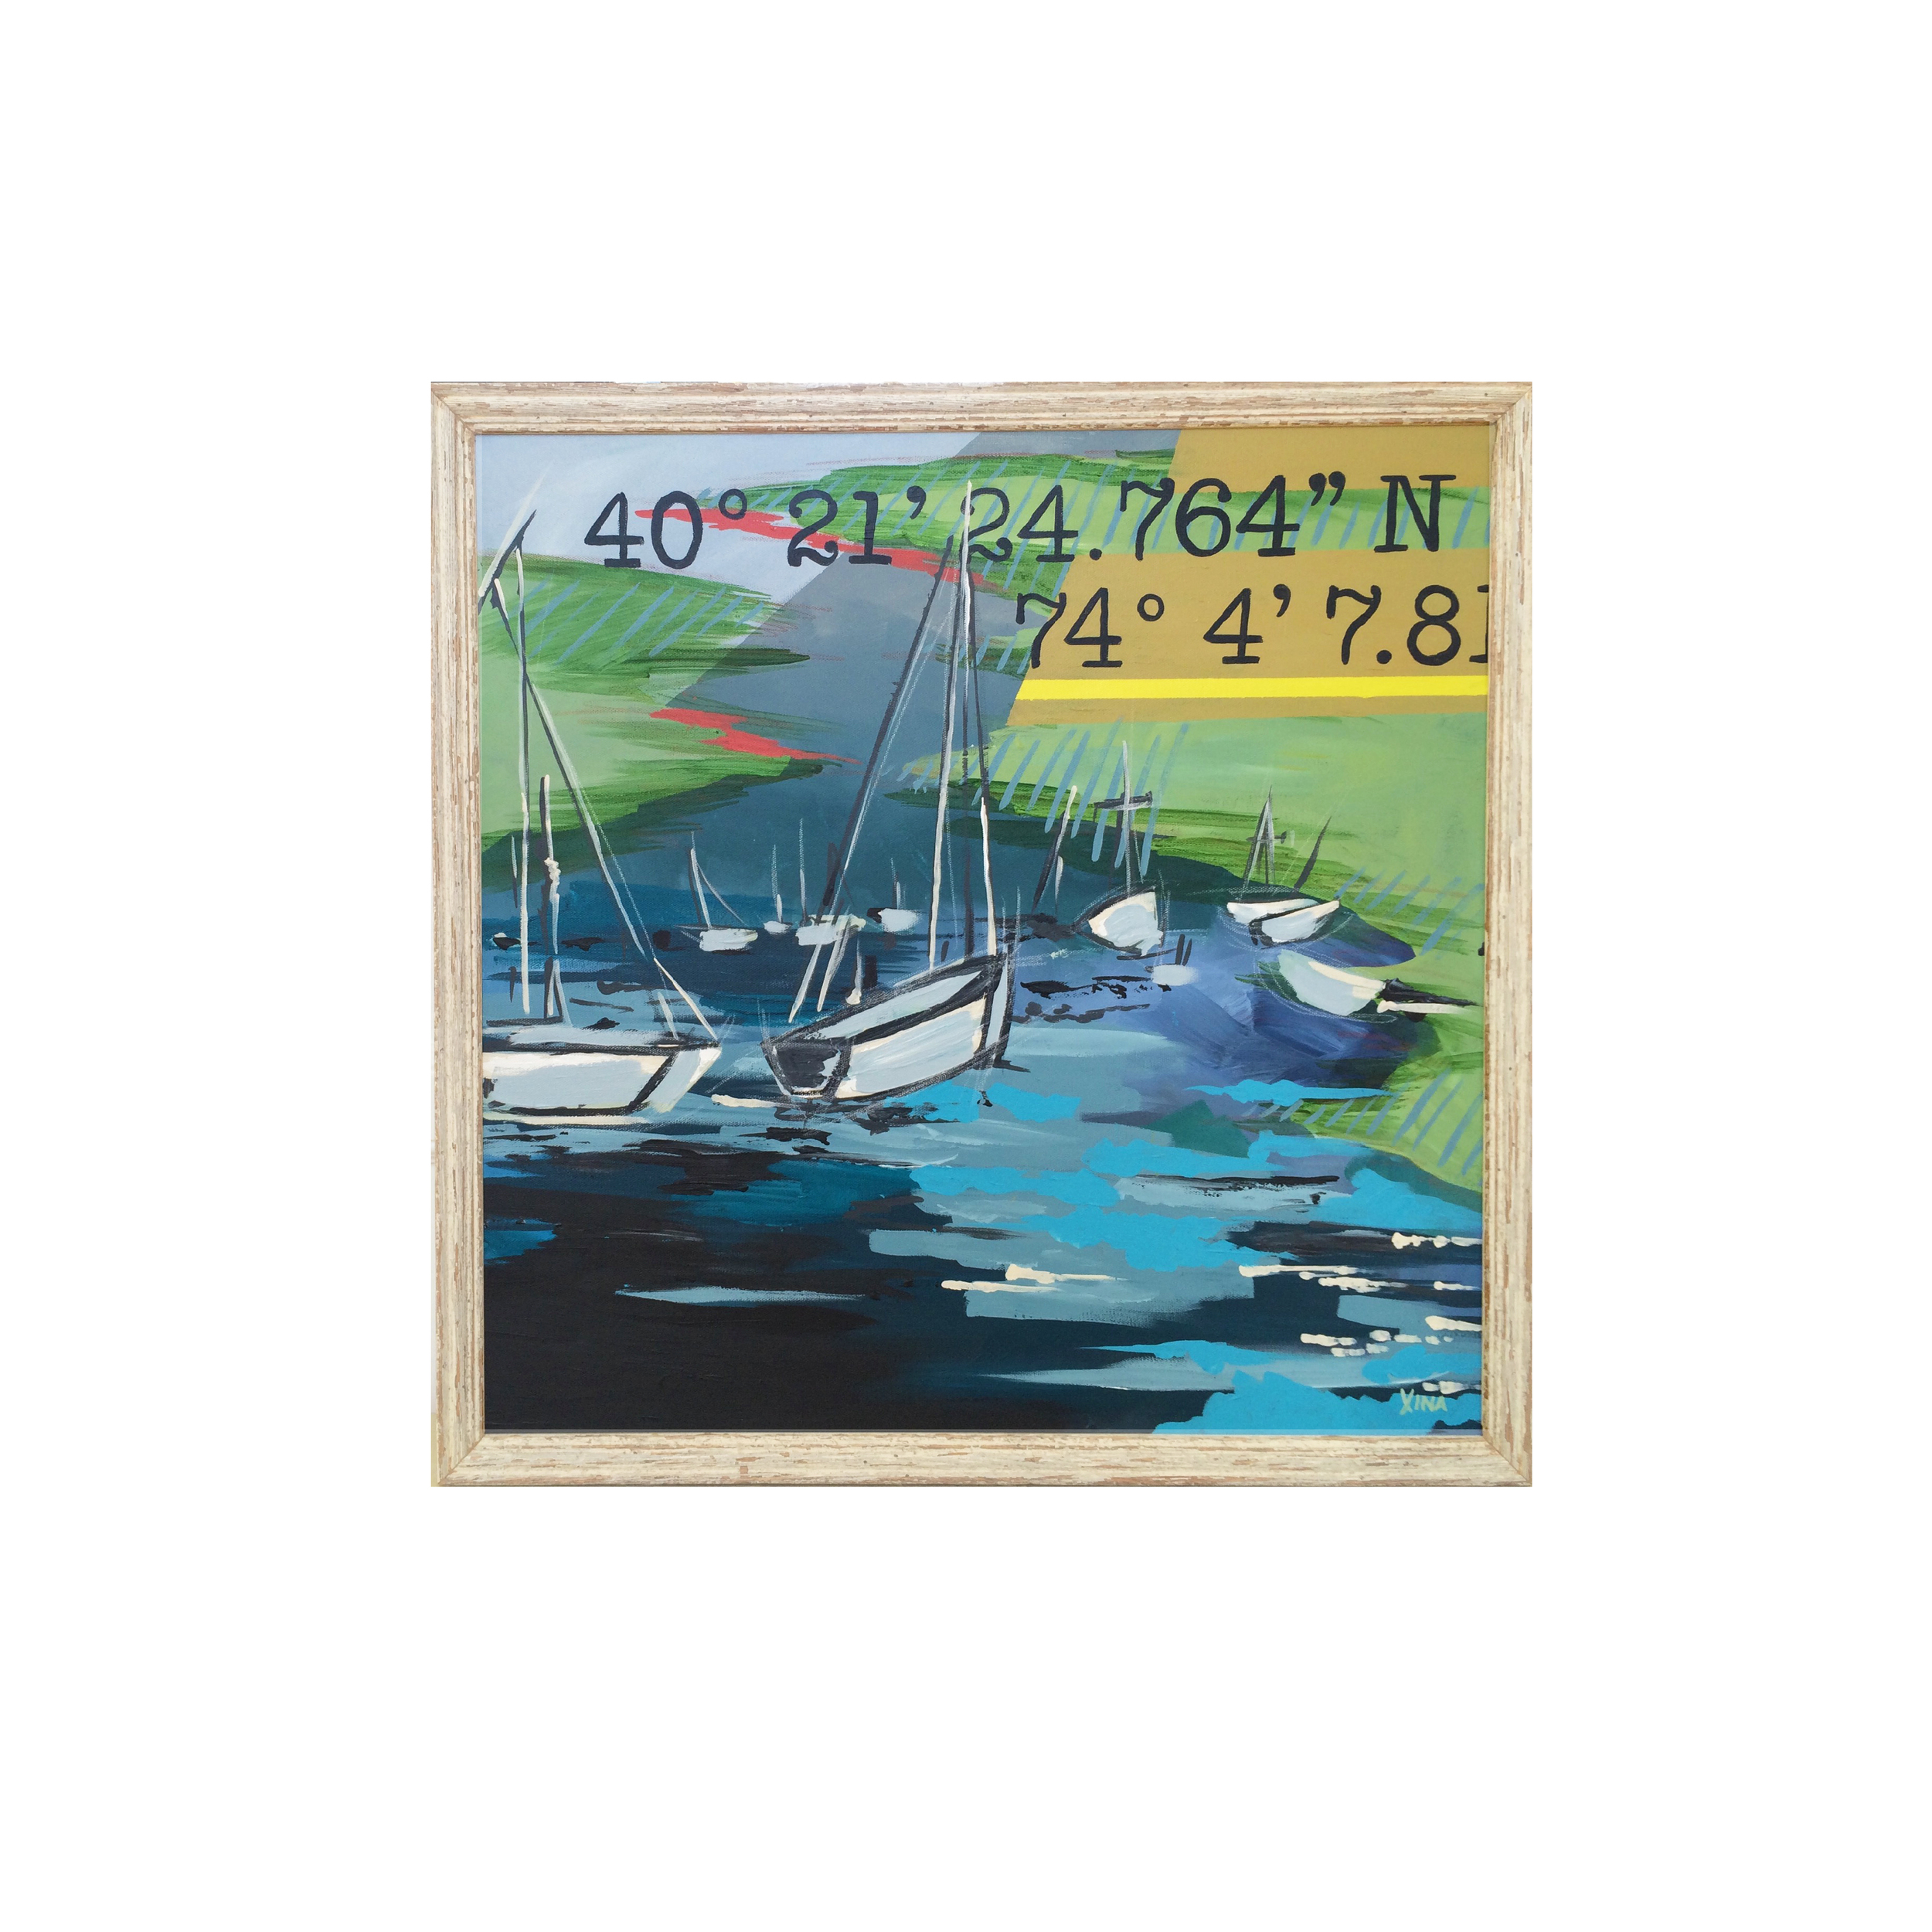 WADE  This bright and beautiful piece features a fleet of sailboats safely resting at dawn, the Navesink coastline and its nautical coordinates. Custom Larson Juhl frame made of 100% distressed wood | 26 x 26